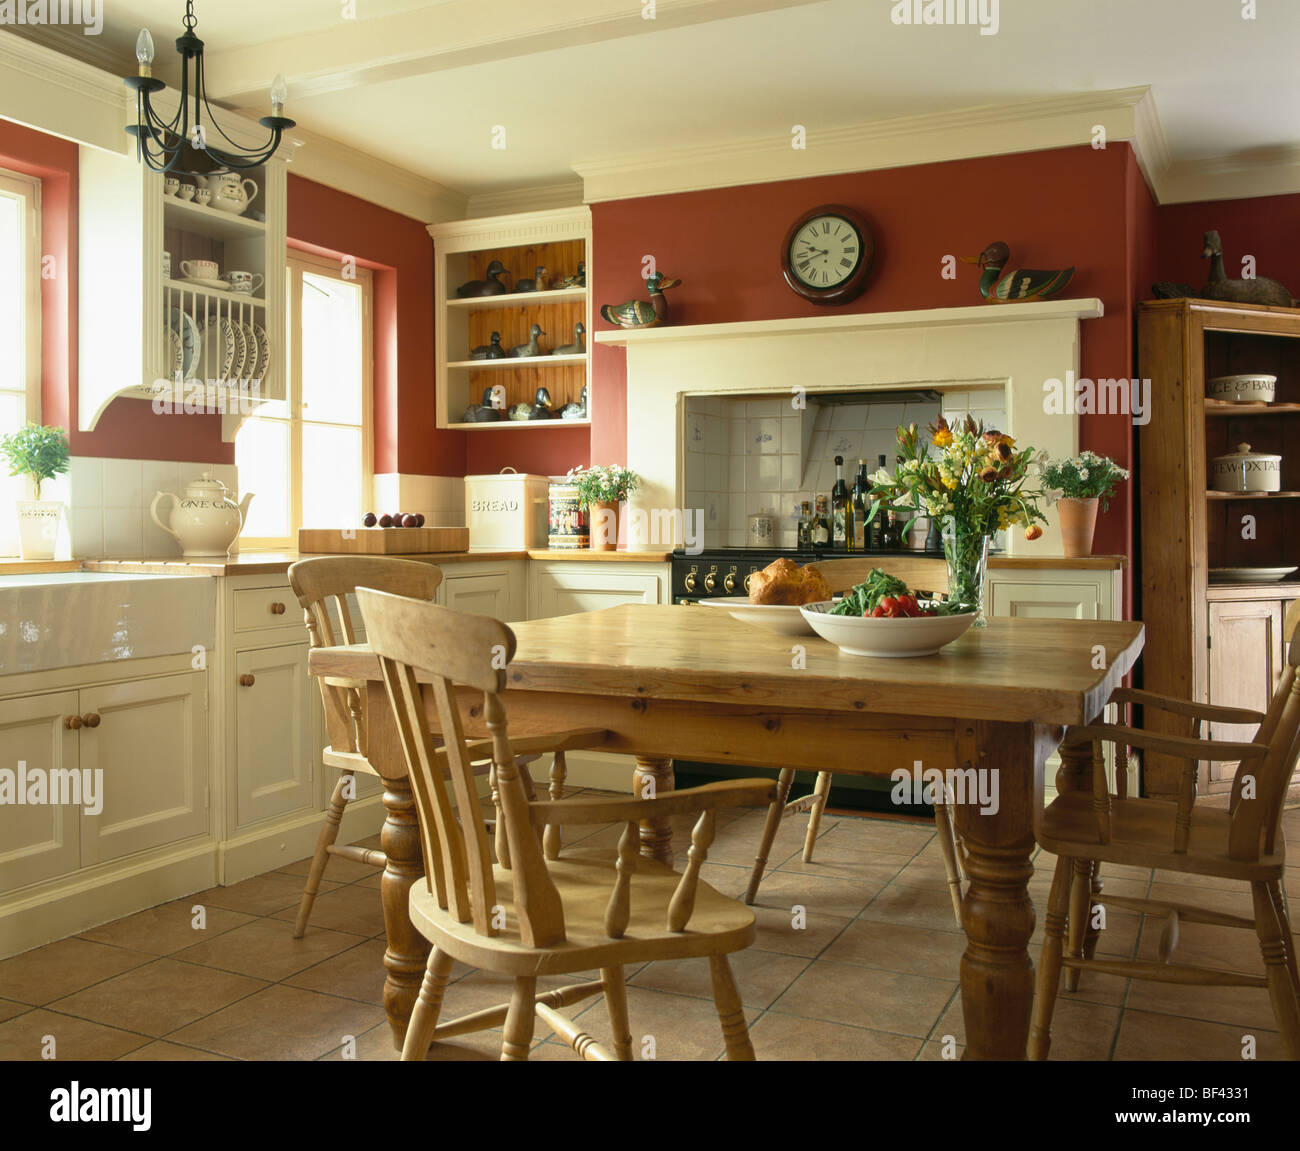 Kitchen With Living Room Design: Pine Table And Chairs In Traditional Red Country Kitchen